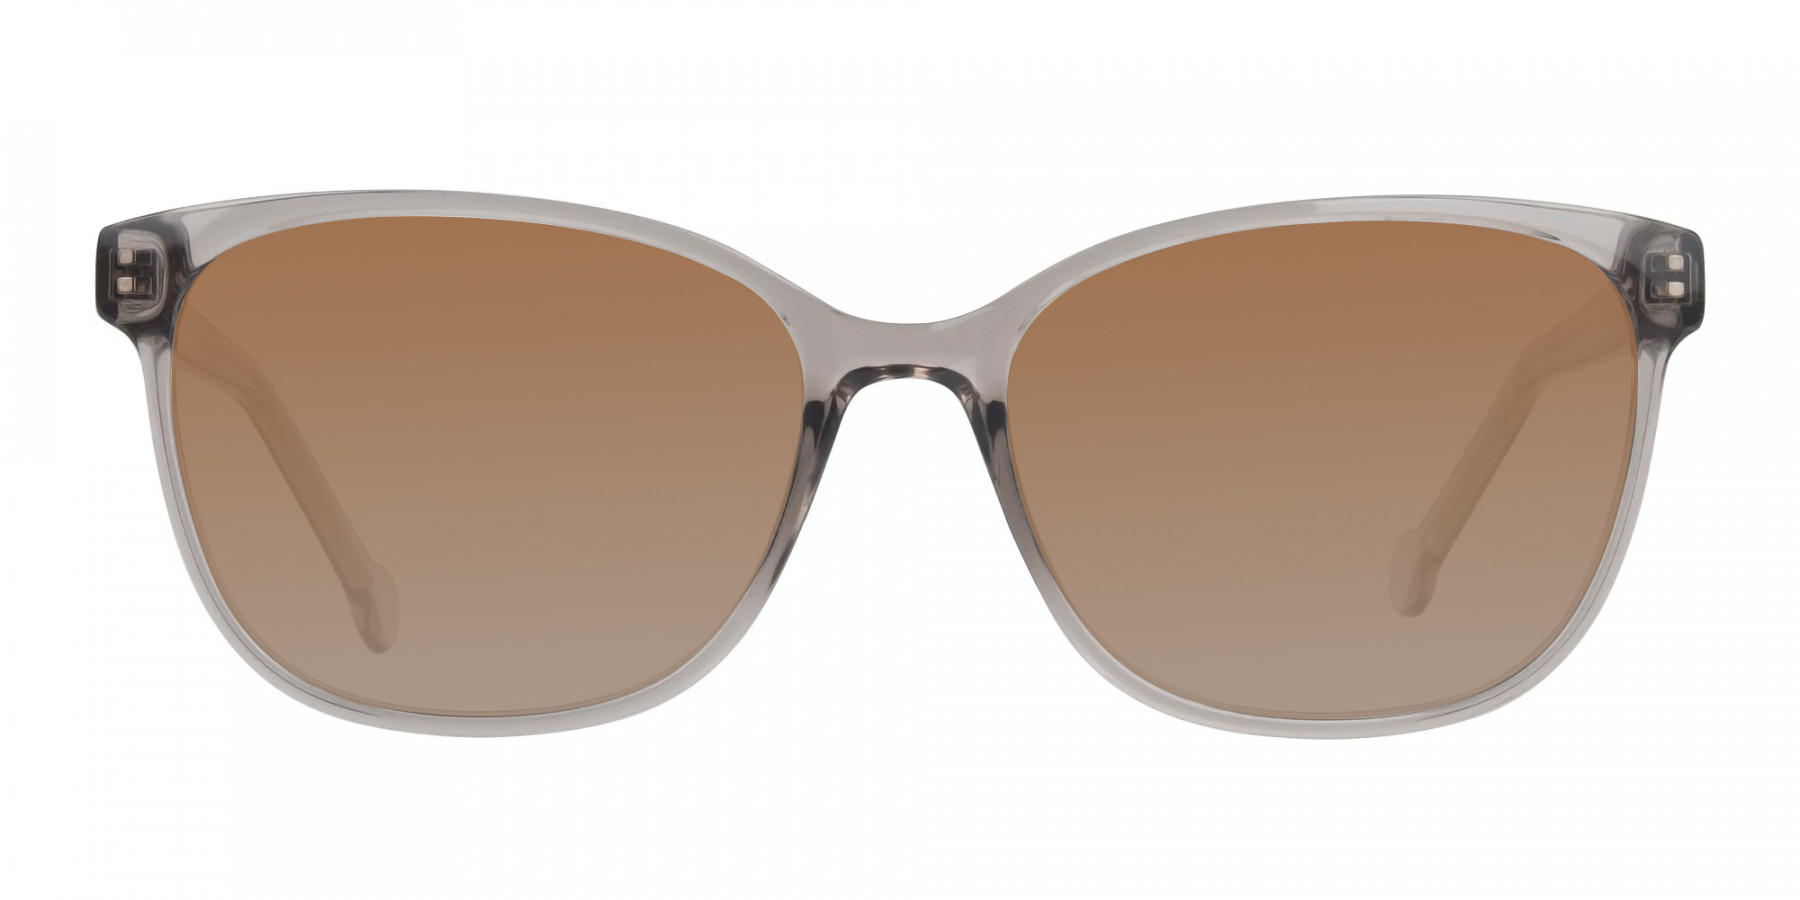 Crystal Grey Frame Sunglasses - 3